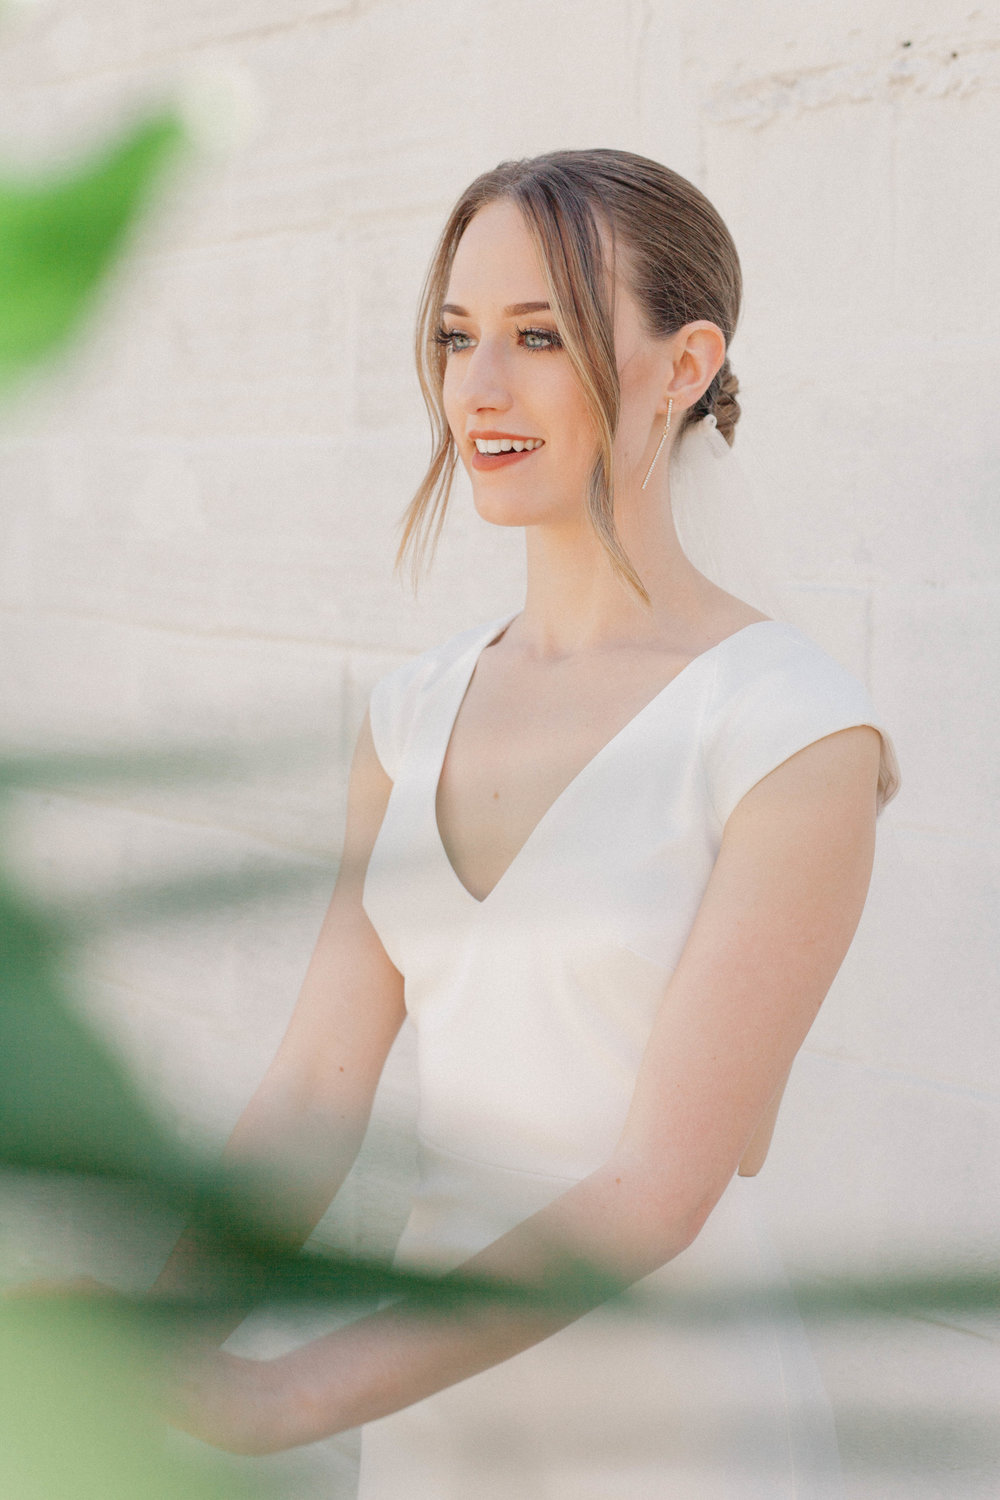 Bridal Portrait with chic and modern wedding dress